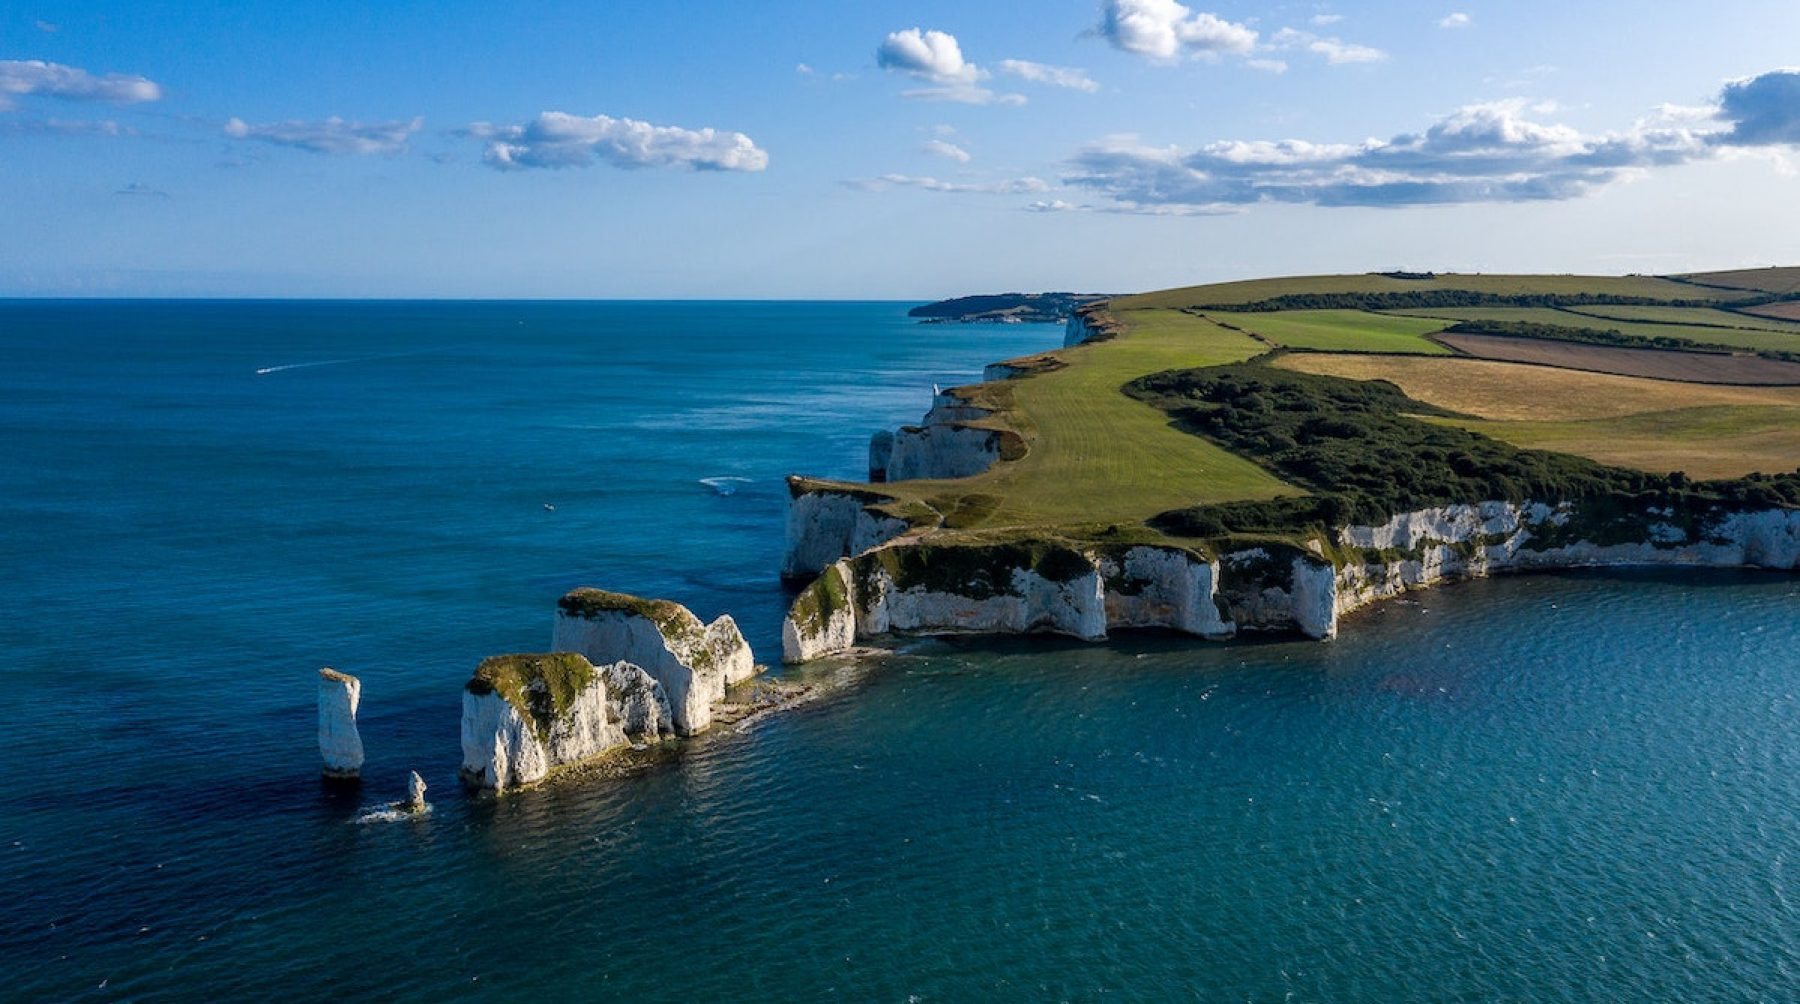 Image for What went right this week: England's new beauty spots, plus more positive news